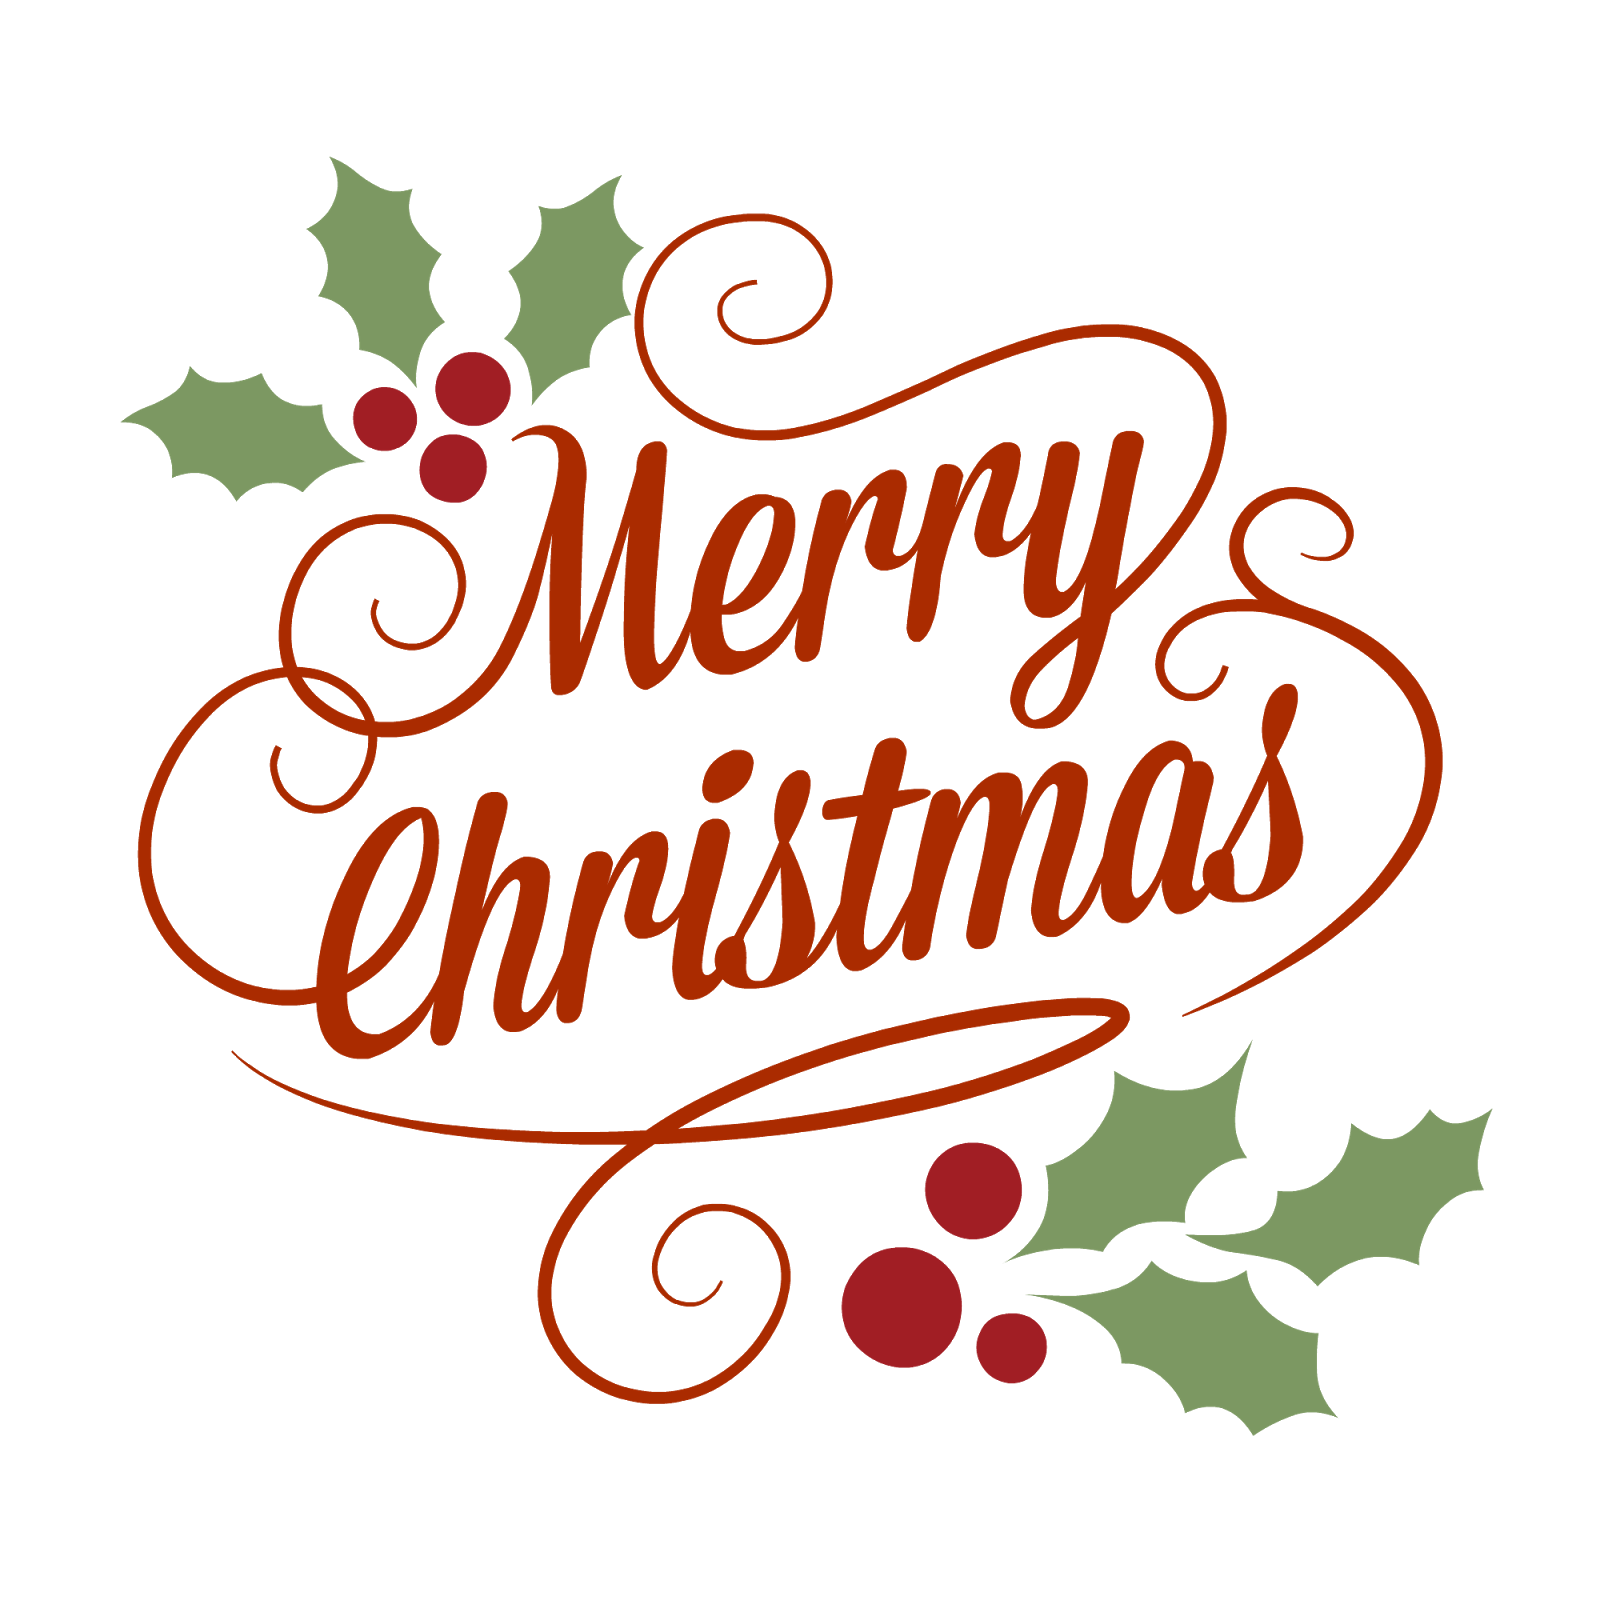 Christmas clipart vintage svg free download Merry Christmas Classical Vintage Sign transparent PNG - StickPNG svg free download